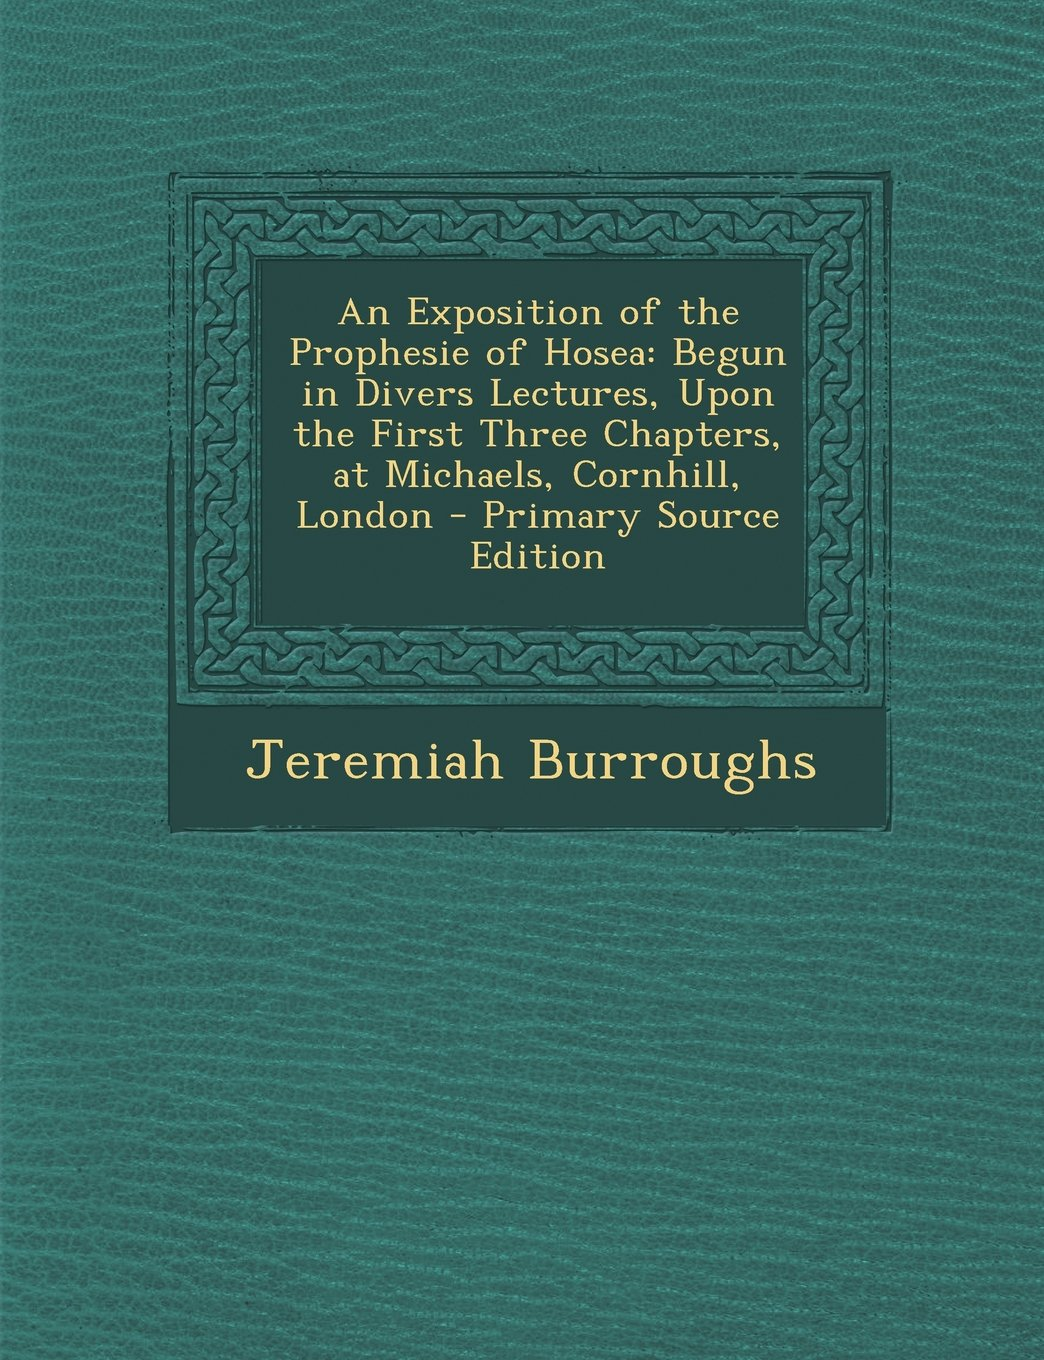 Download An Exposition of the Prophesie of Hosea: Begun in Divers Lectures, Upon the First Three Chapters, at Michaels, Cornhill, London - Primary Source Edition PDF